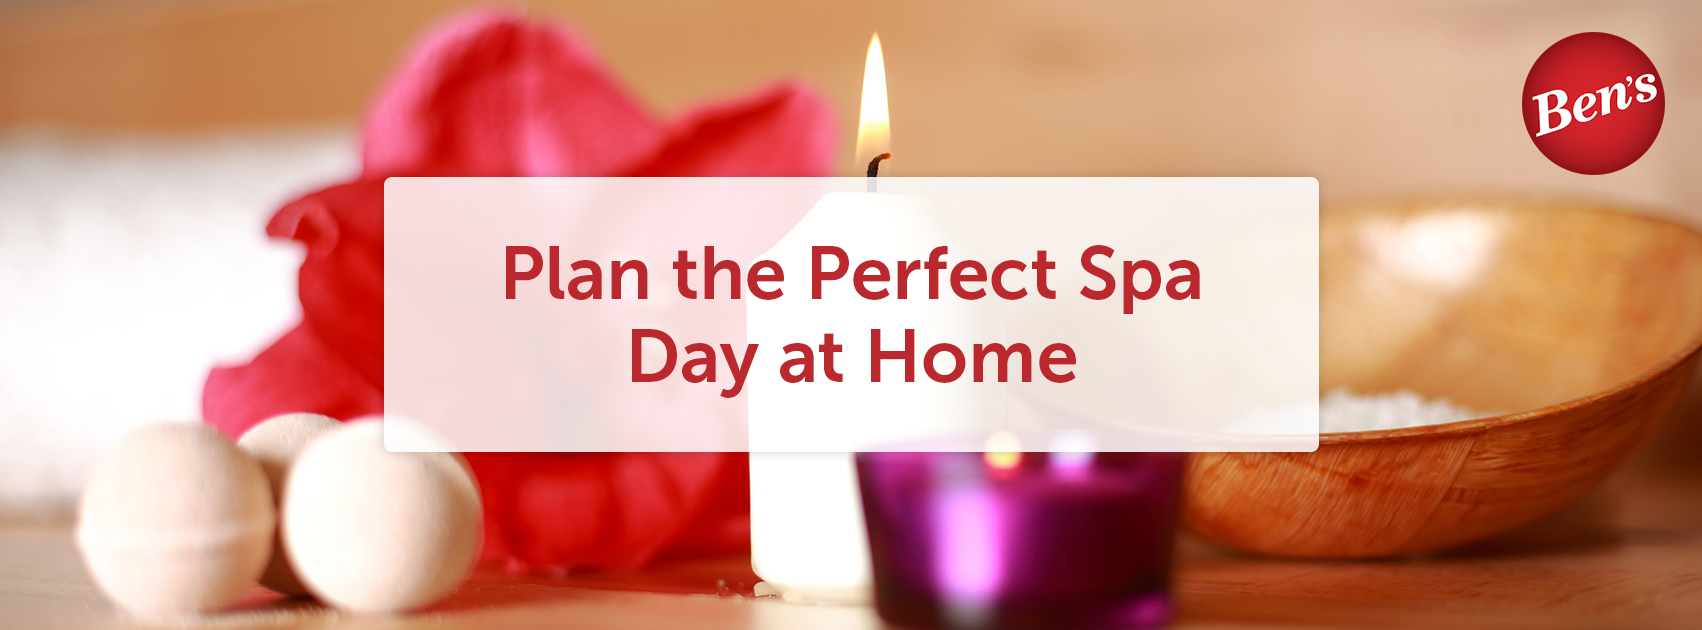 Plan the Perfect Spa Day at Home